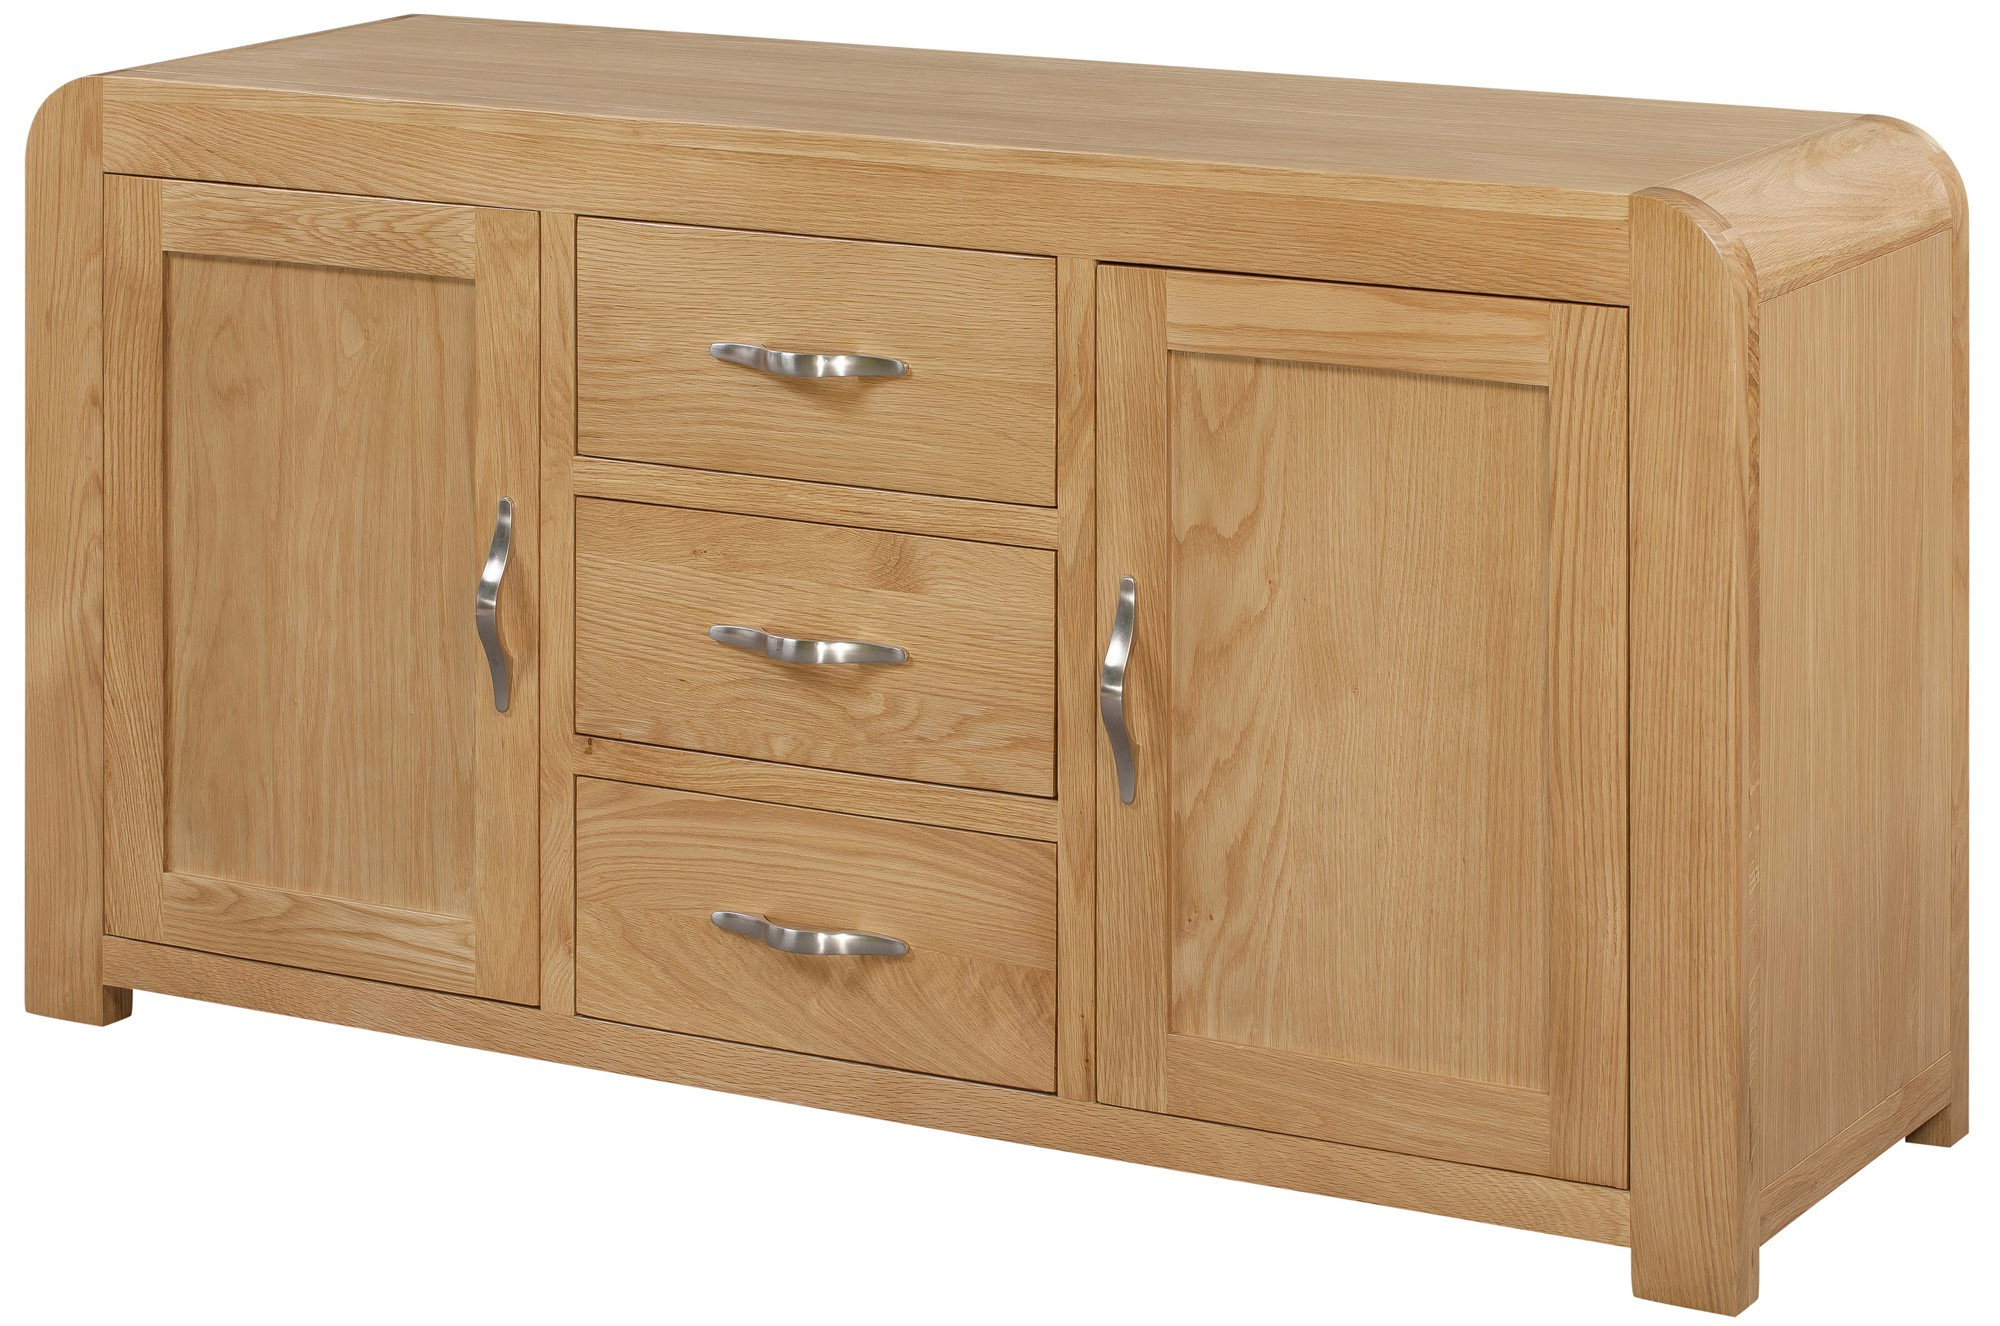 Well Liked Venice Sideboard With 2 Doors & 3 Drawers – Venice Oak Range – Shop Regarding Walnut Finish 2 Door/3 Drawer Sideboards (View 4 of 20)